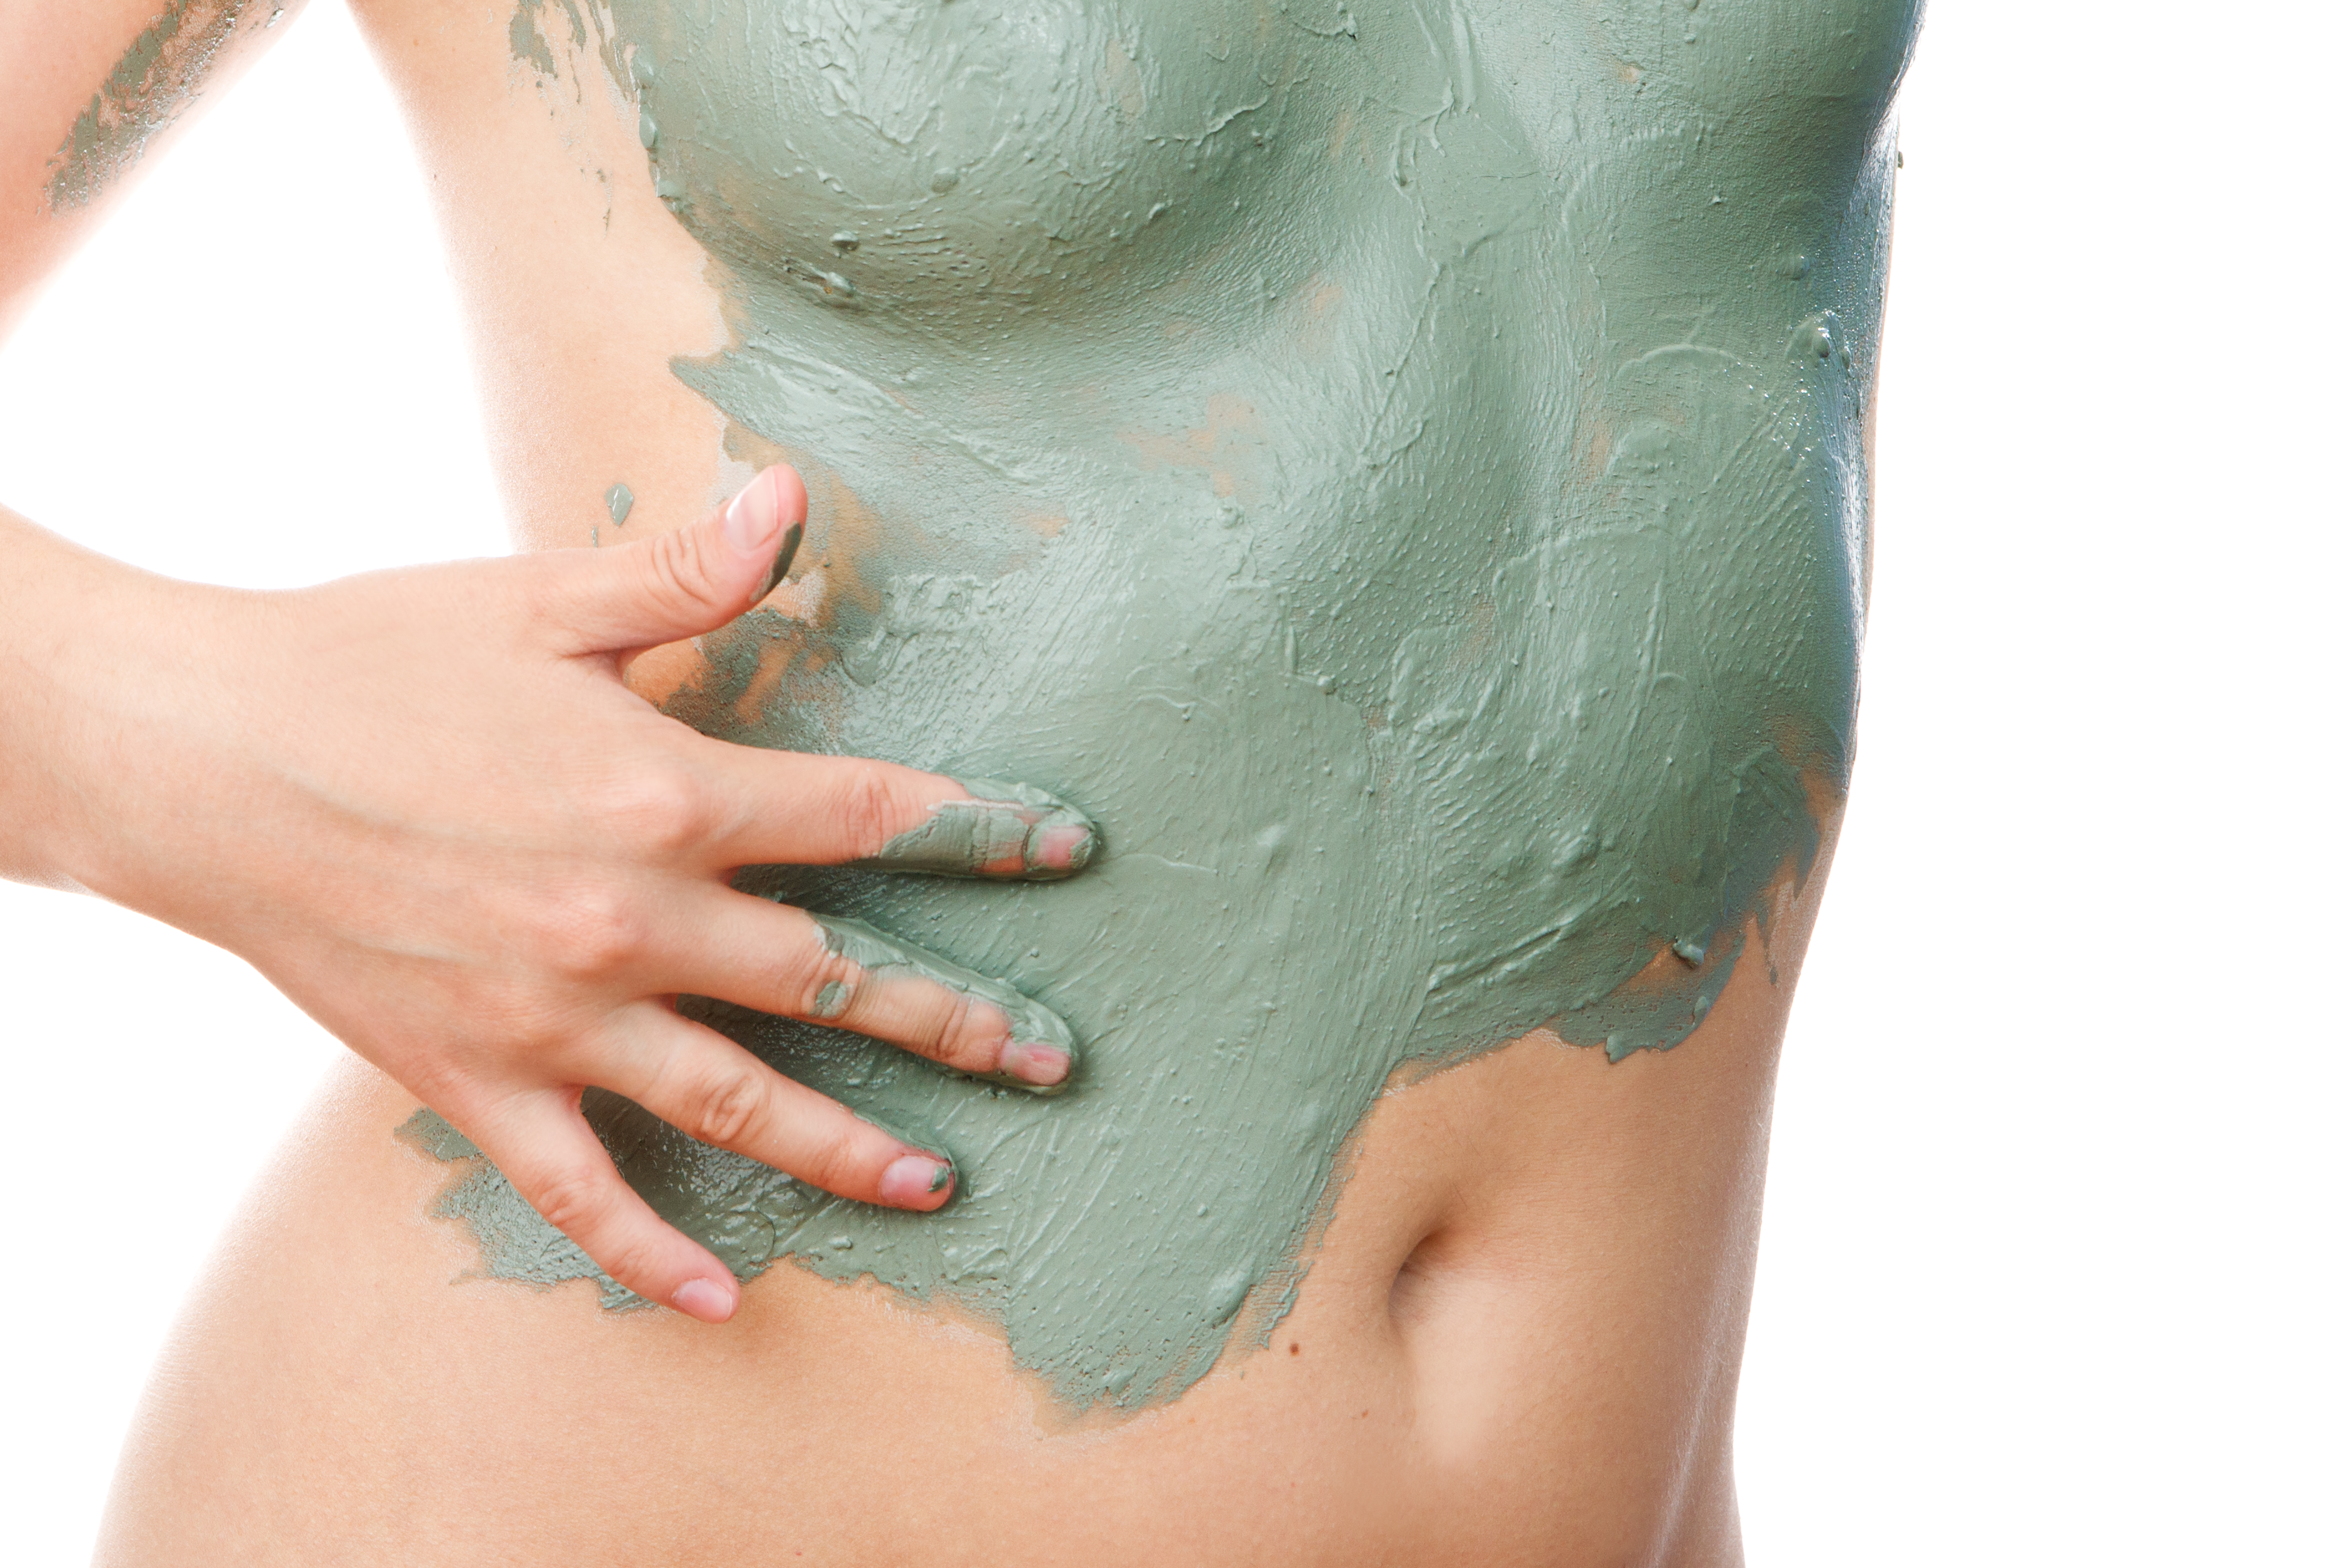 Why is Brazilian clay so good for your skin?